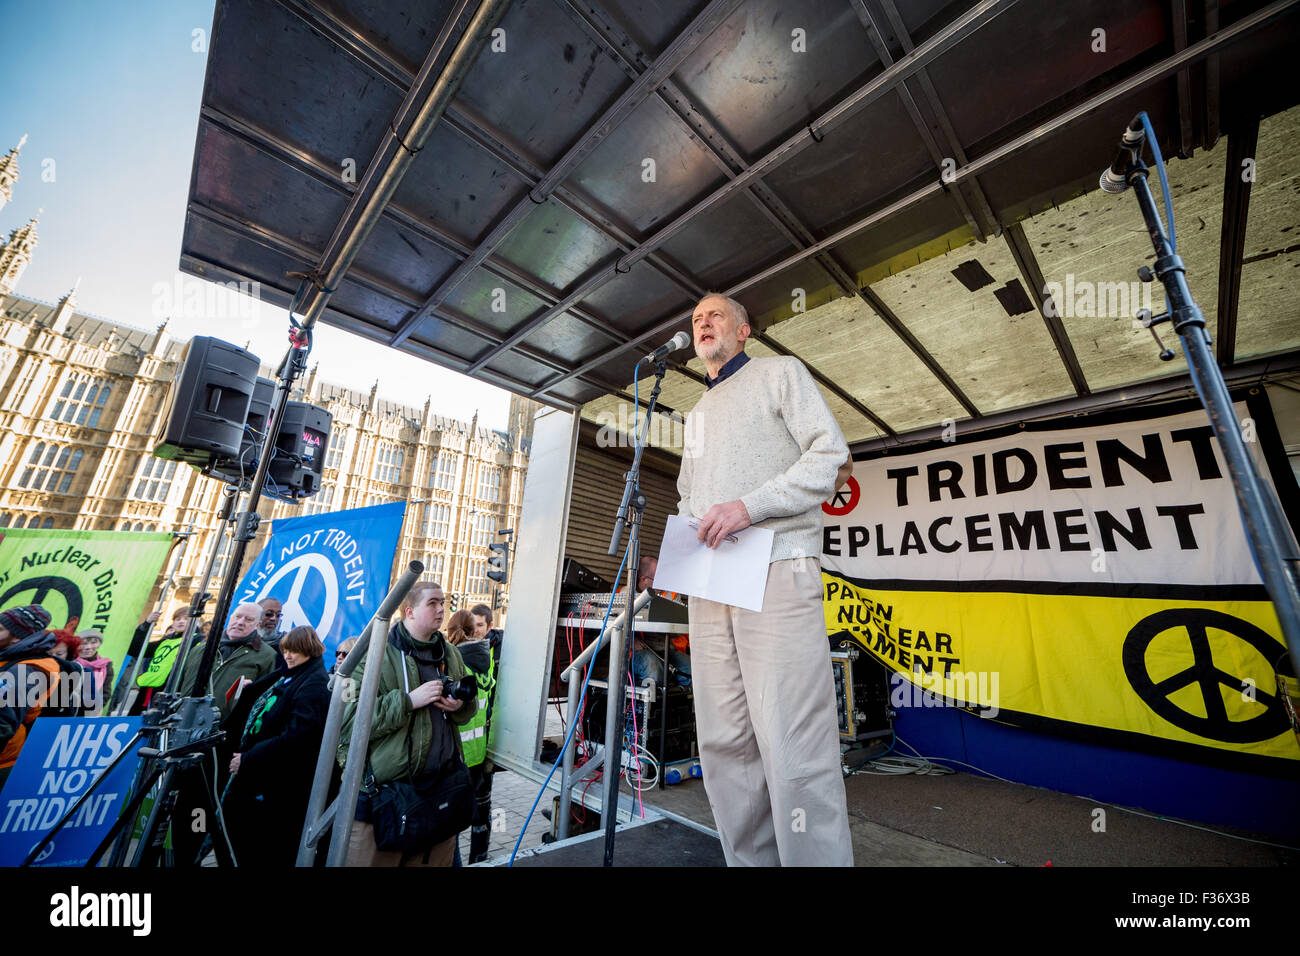 File Image: London, UK. 24th Jan, 2015. Jeremy Corbyn speaks at 'Wrap-Up Trident' CND Protest in Westminster Credit: - Stock Image